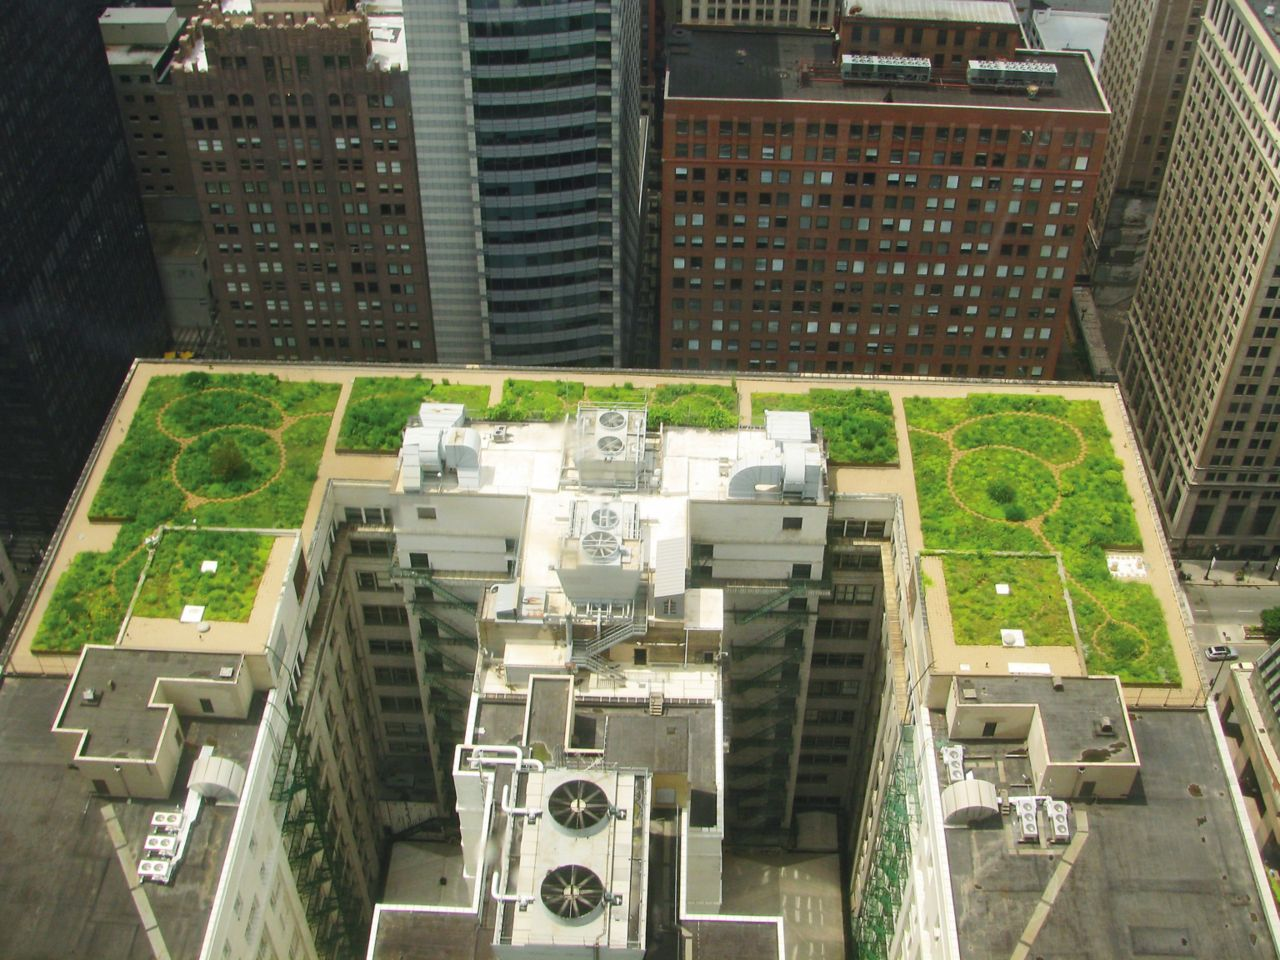 Green roof with single-ply membrane installed on Chicago City Hall